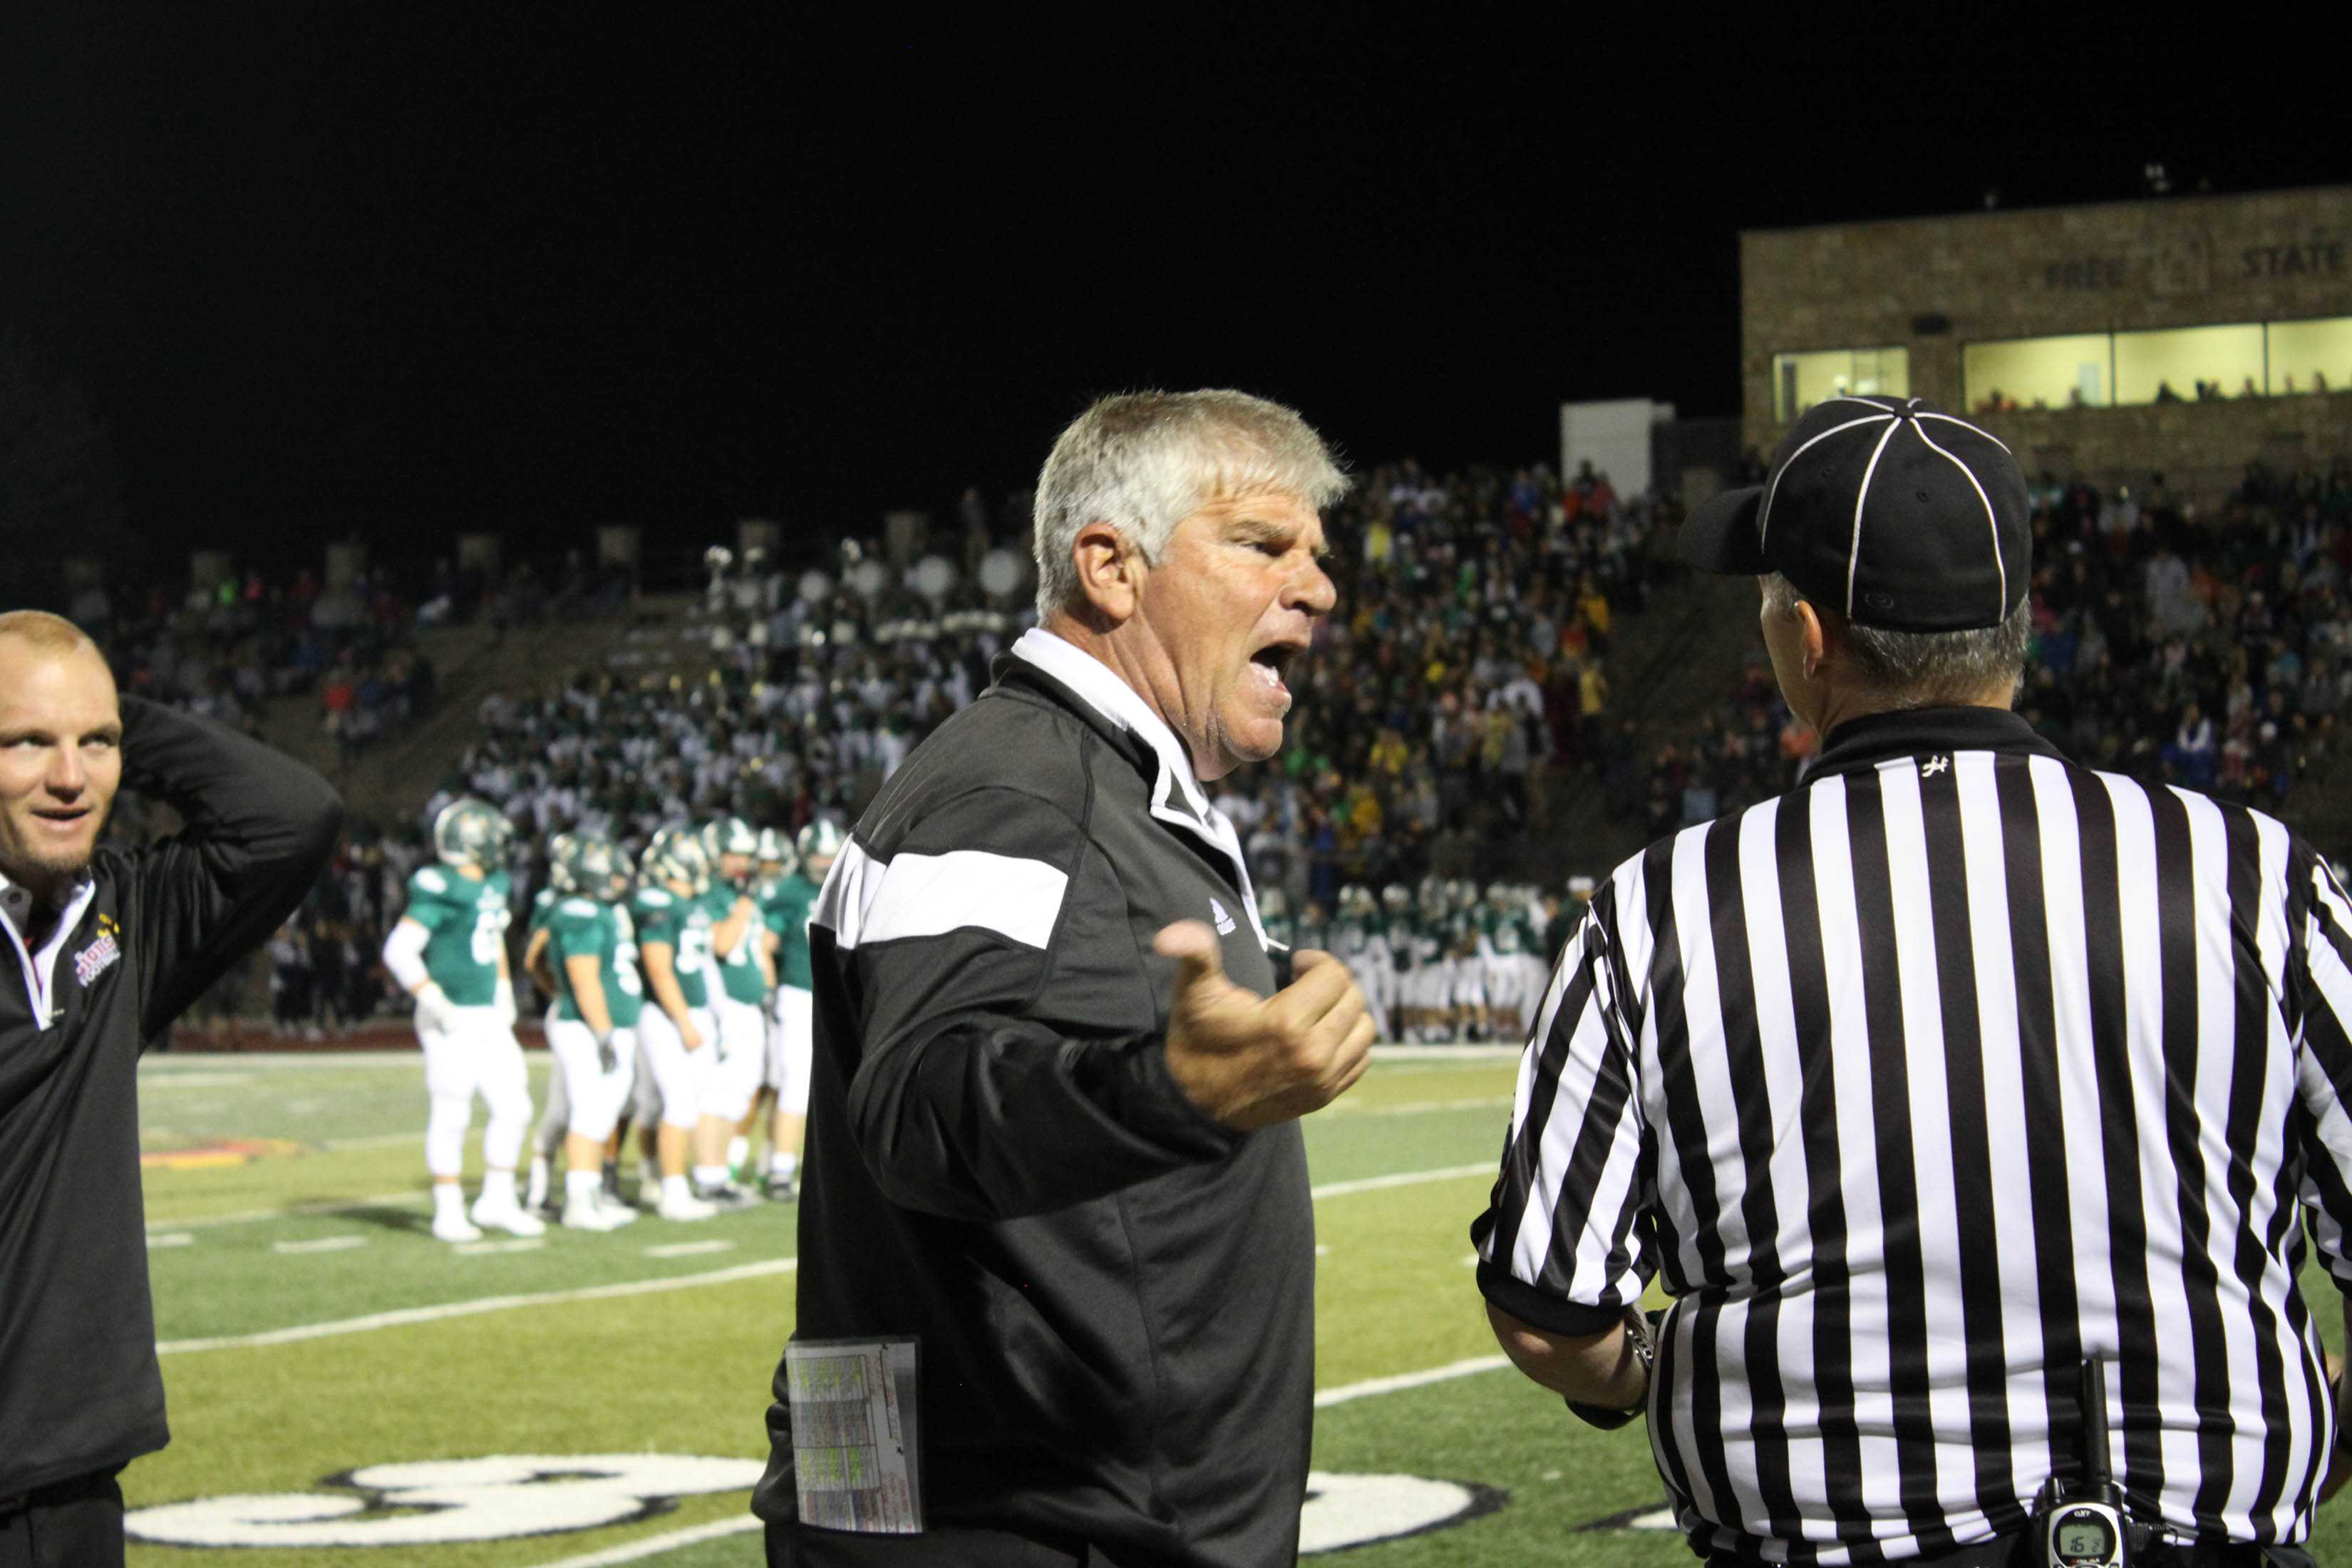 Head football coach Dirk Wedd talks on the sidelines at the City Showdown. Lions lost to Free State 42-7.